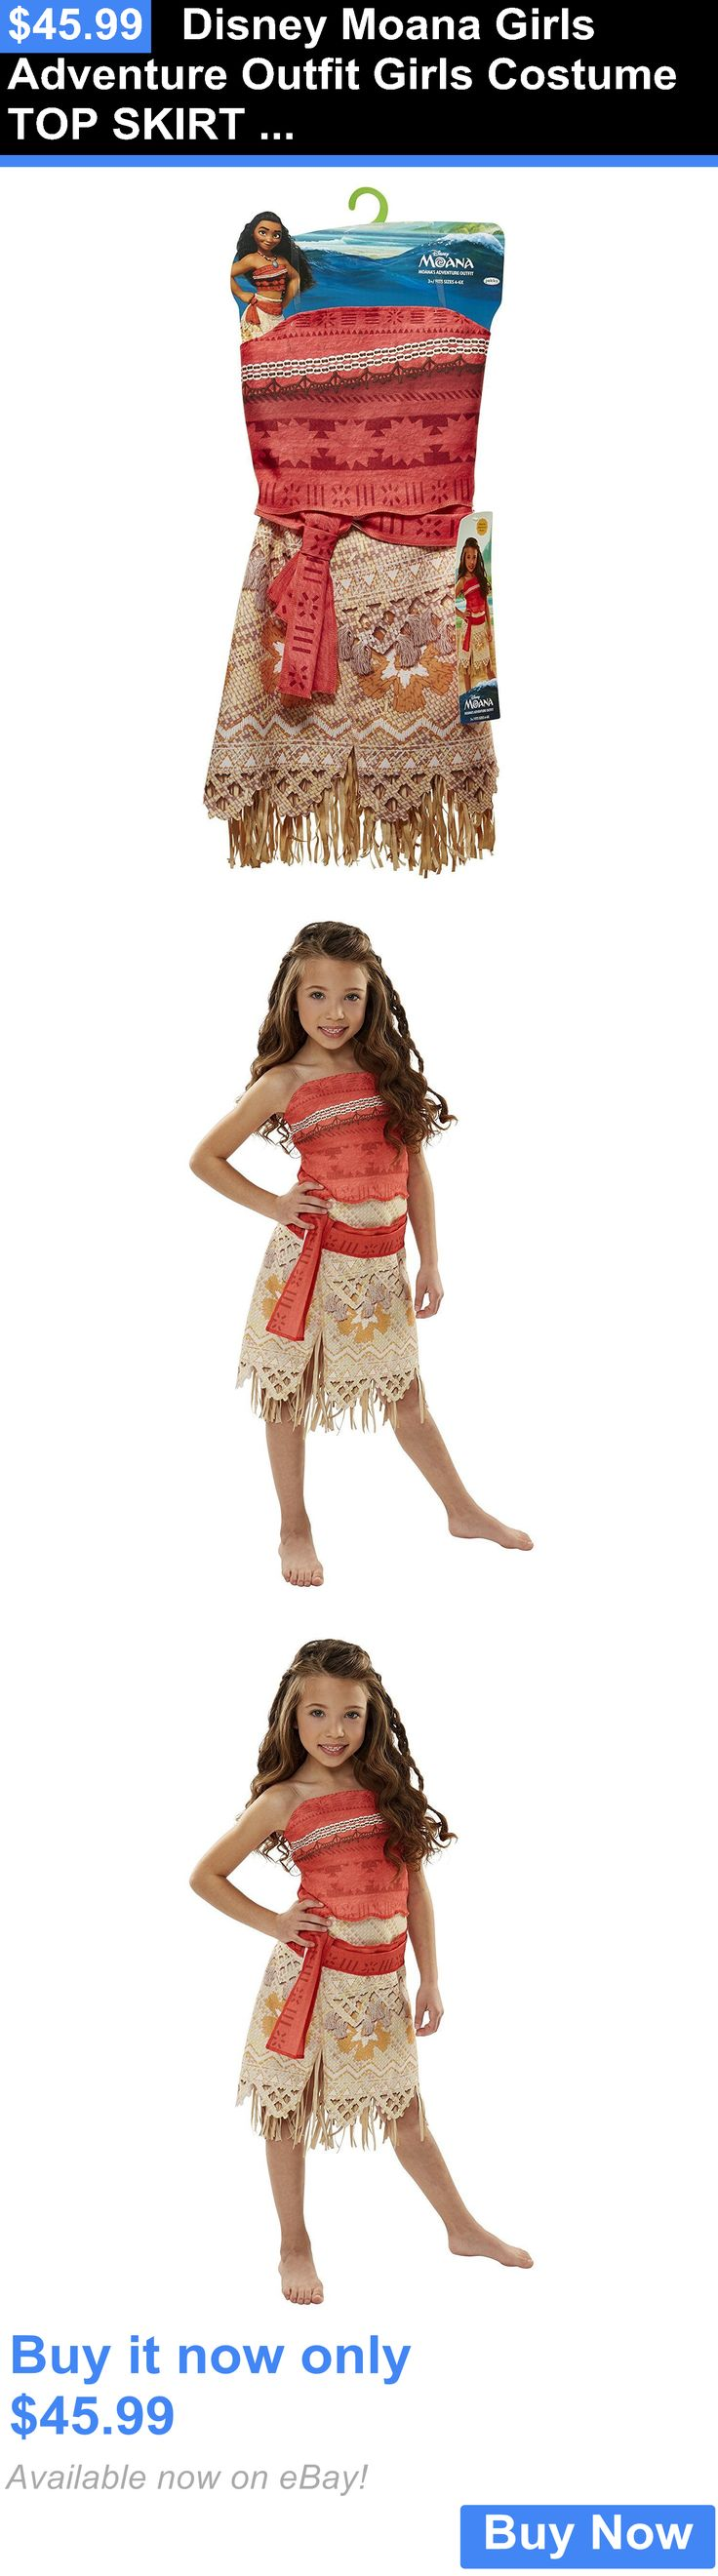 Halloween Costumes Kids: Disney Moana Girls Adventure Outfit Girls Costume Top Skirt 4-6X BUY IT NOW ONLY: $45.99